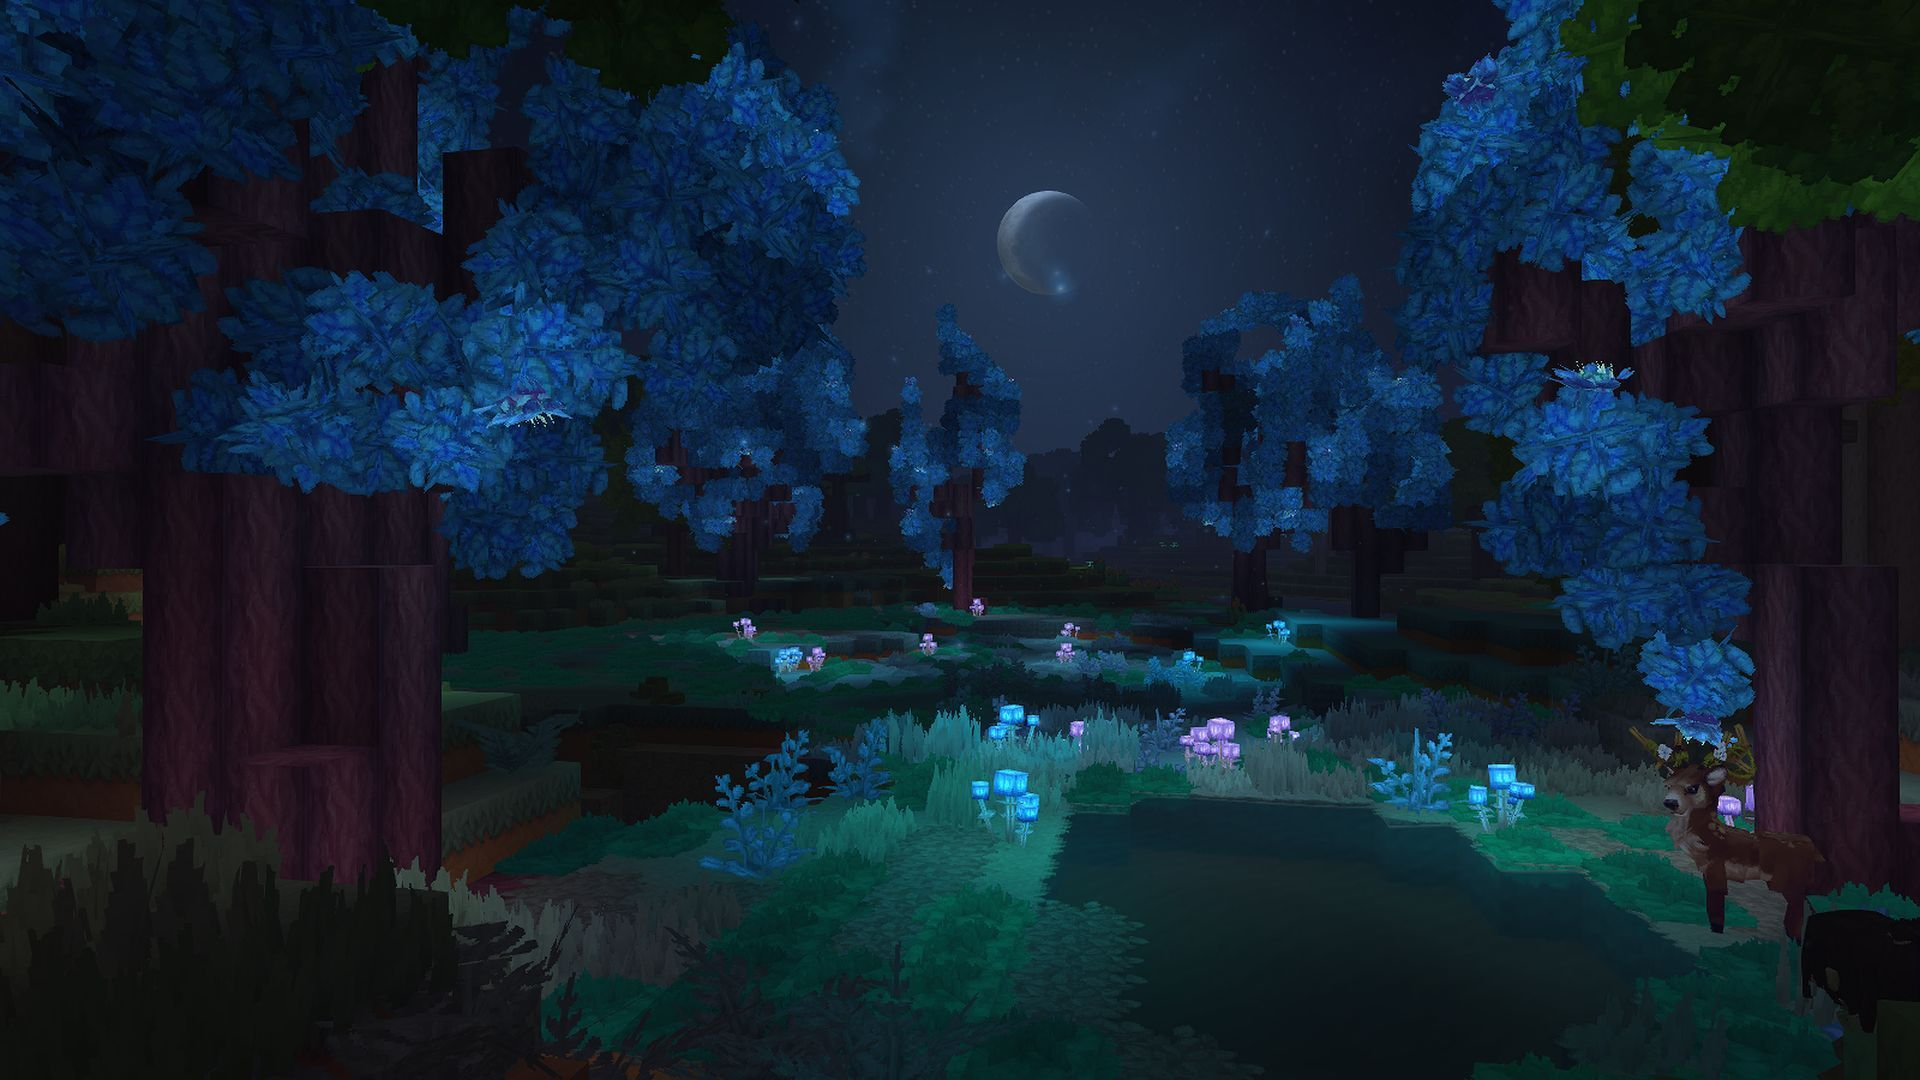 Minecraft Night Wallpapers Top Free Minecraft Night Backgrounds Wallpaperaccess